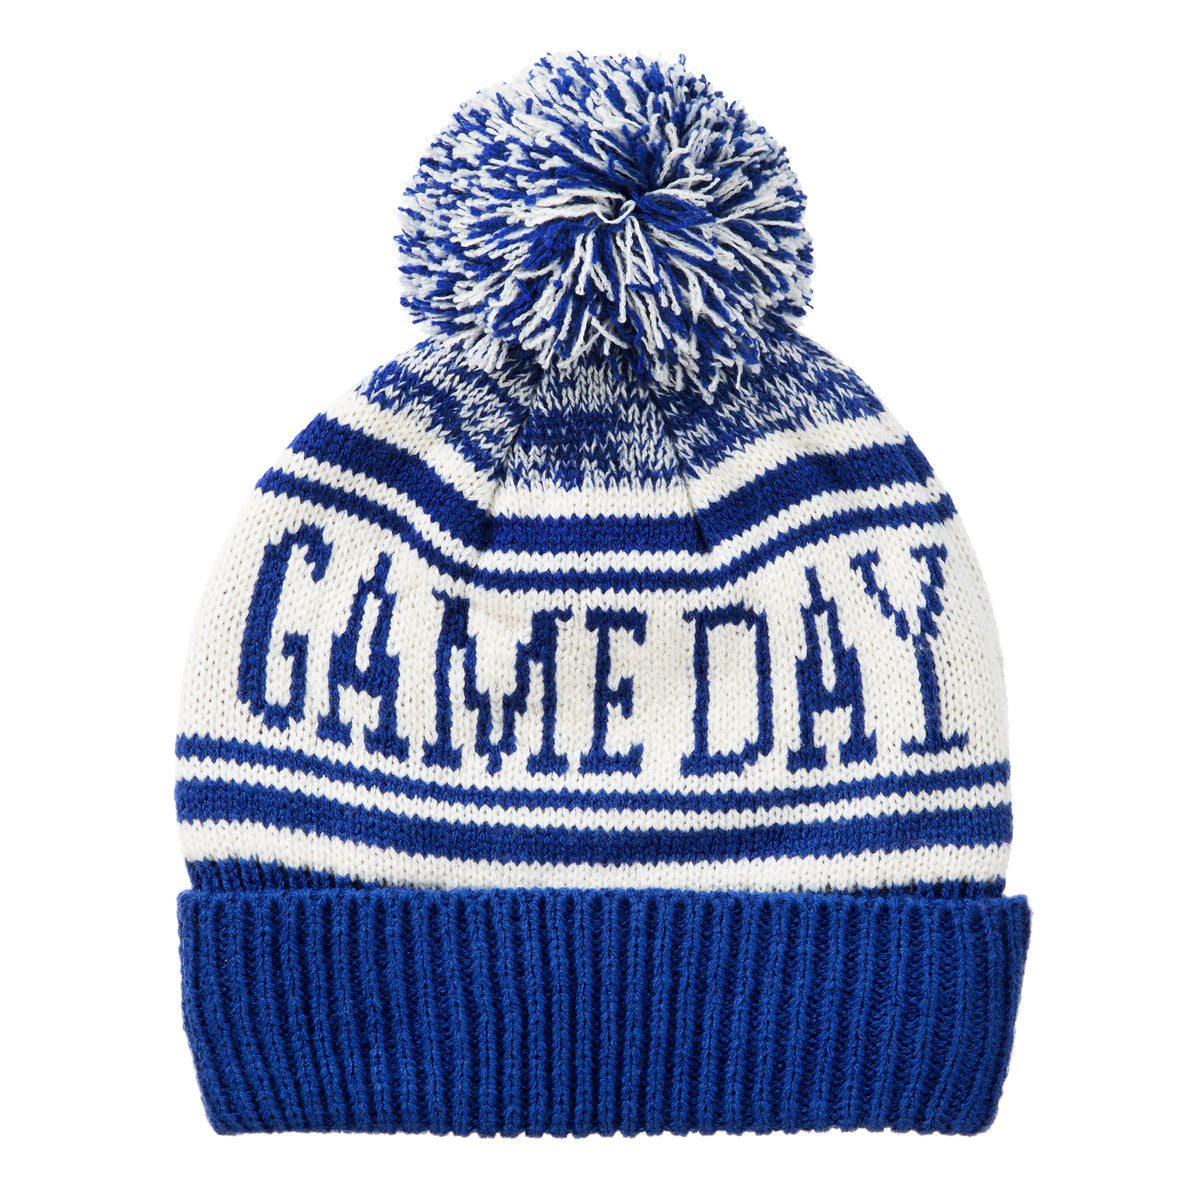 Women's Game Day Hat in Sapphire (Blue)